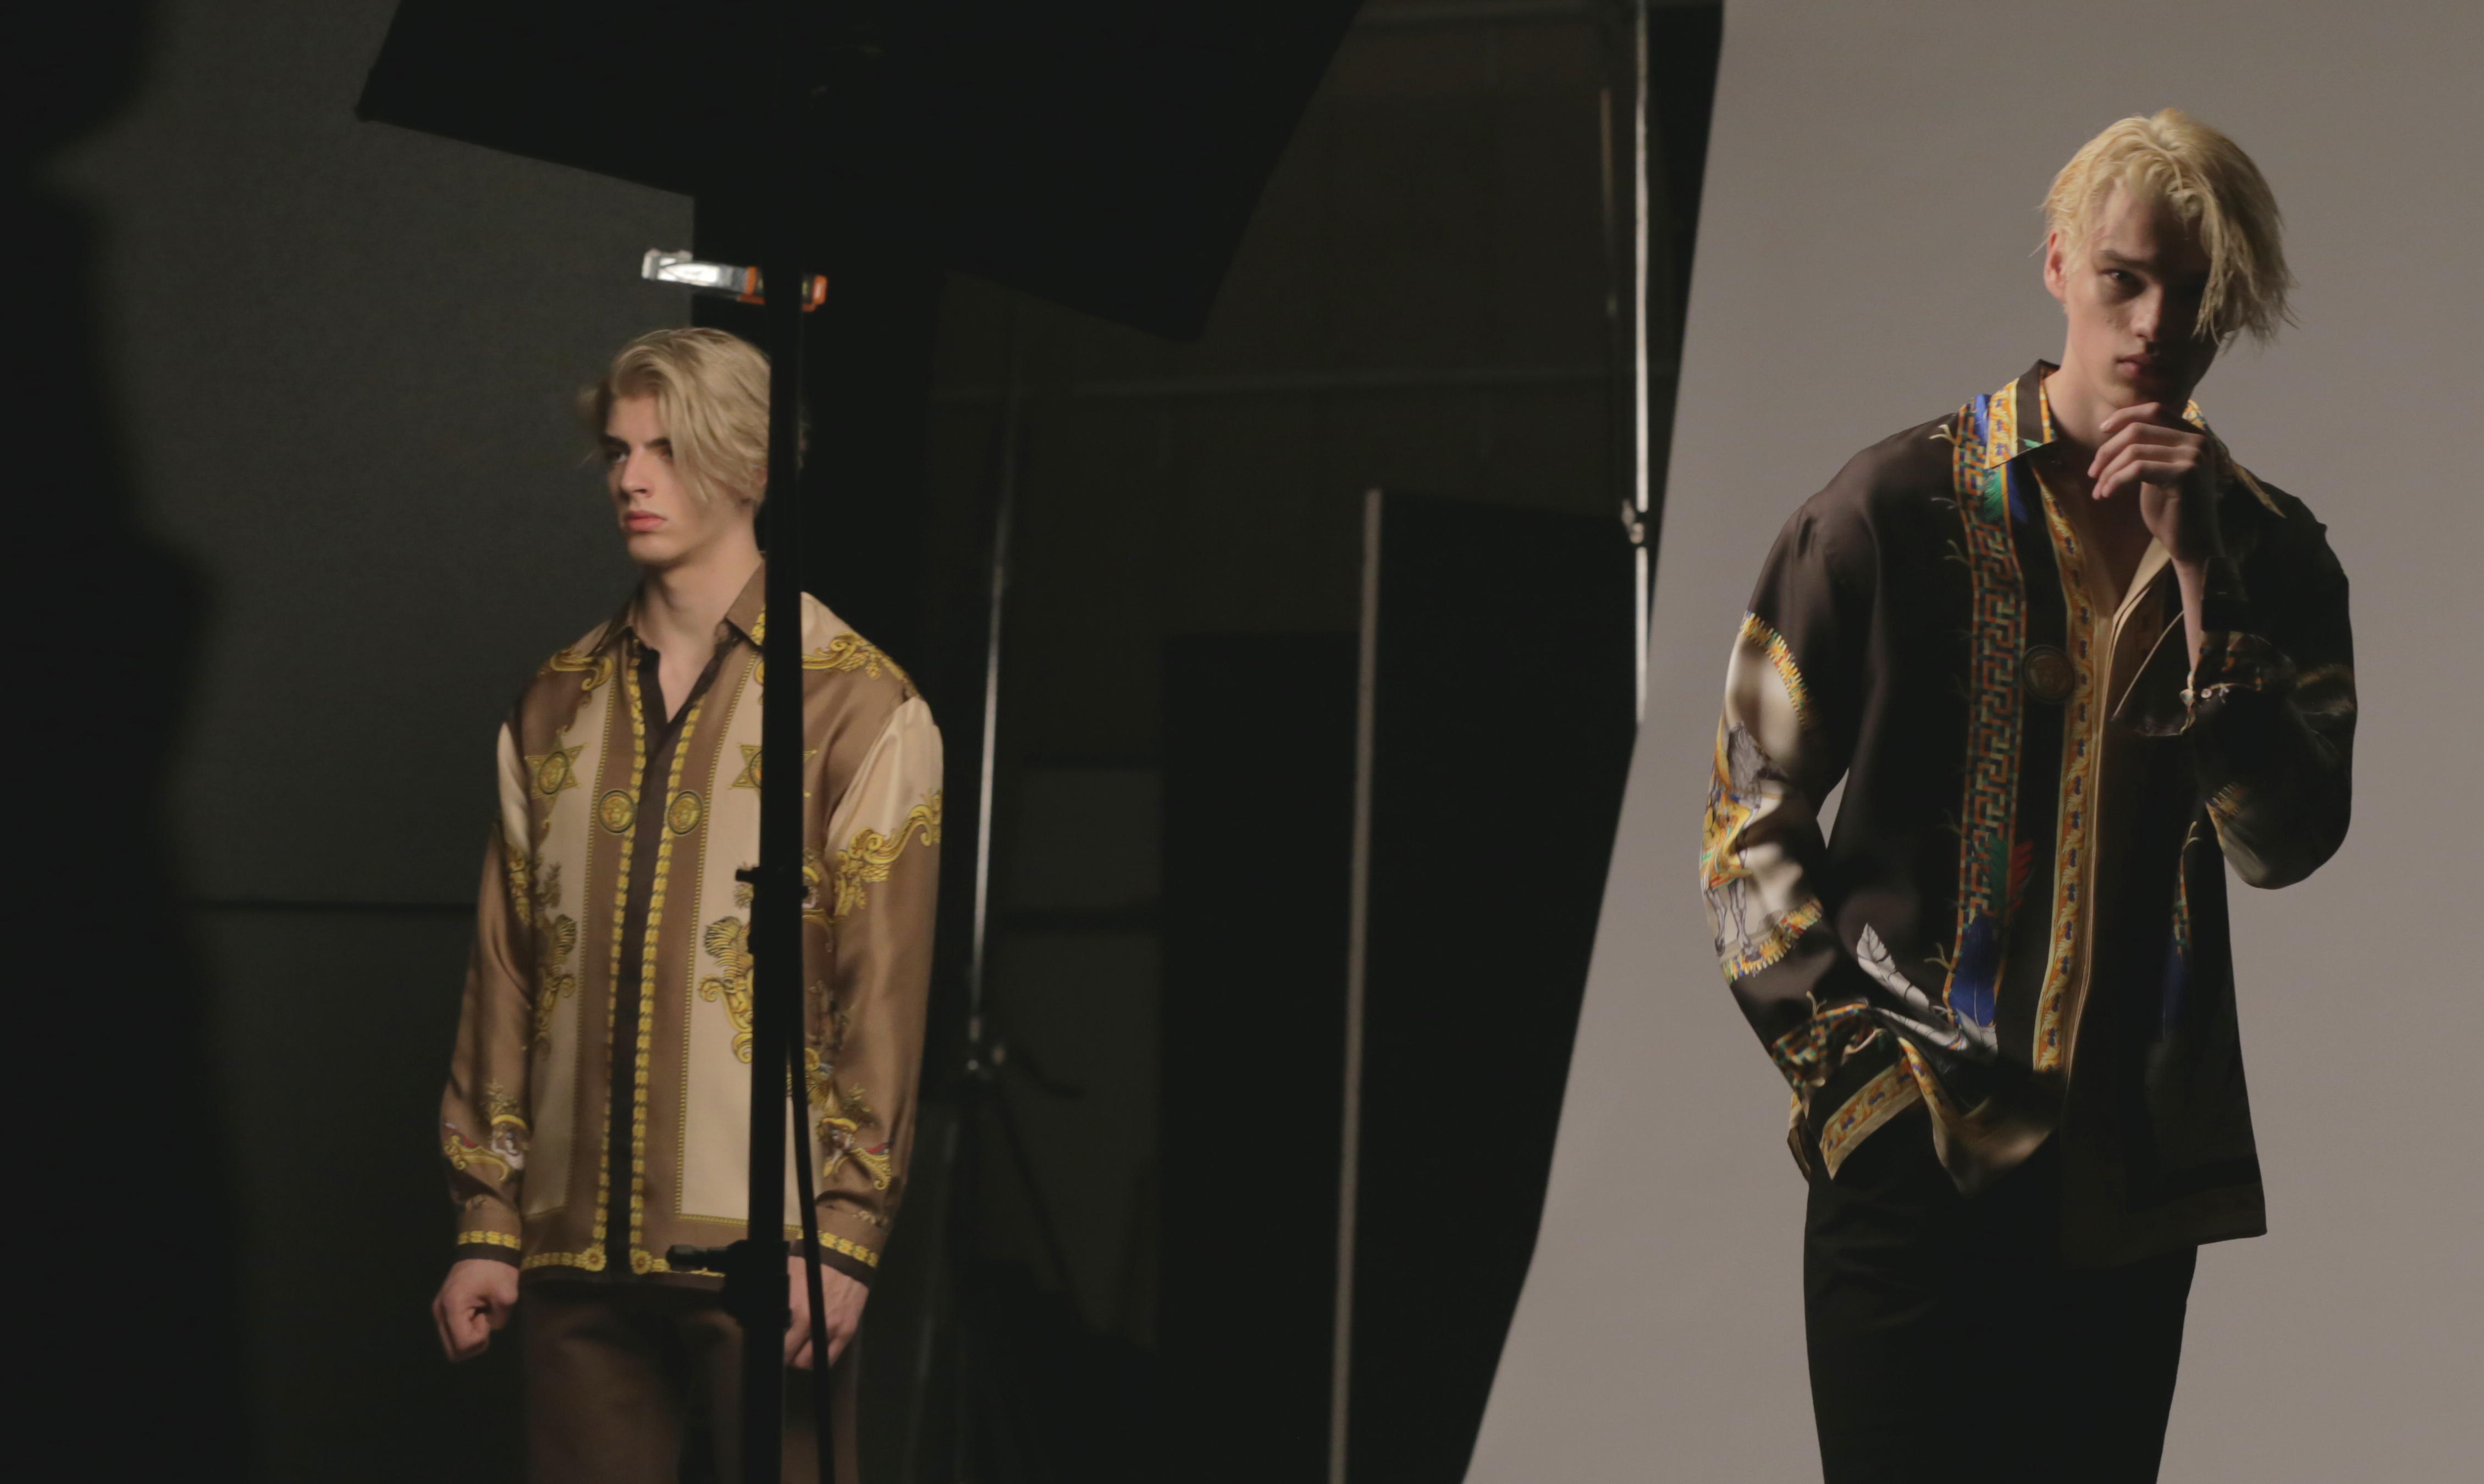 Versace-Fall-Winter-2014-Campaign-Behind-the-Scenes-001